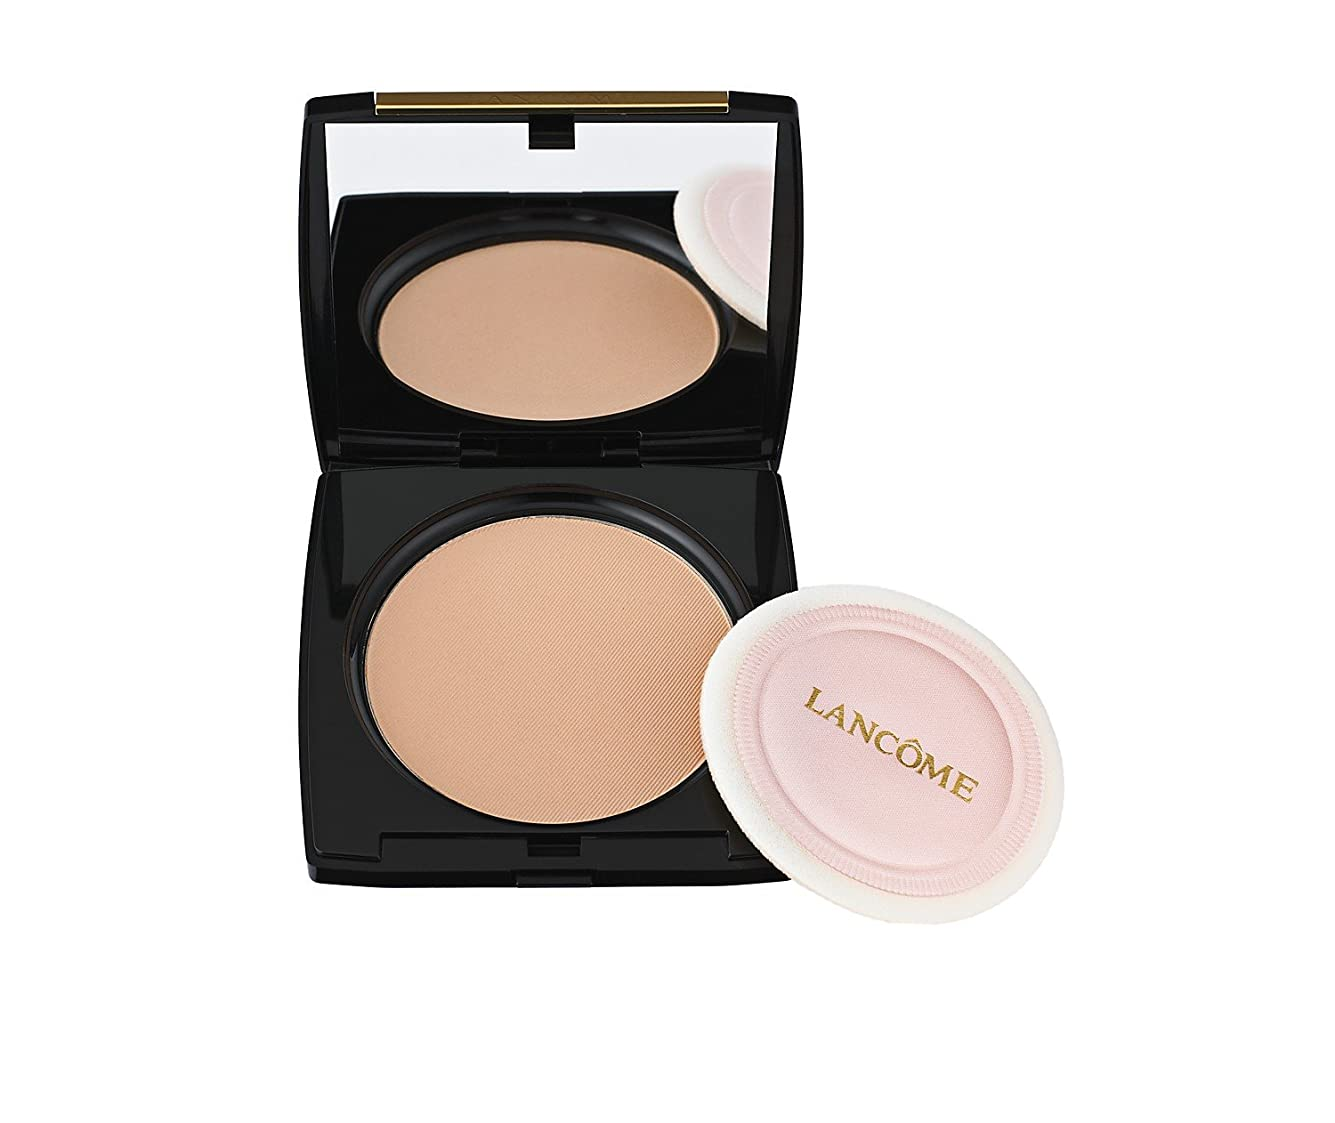 退化する踊り子楽なランコム Dual Finish Multi Tasking Powder & Foundation In One - # 130 Por D'Ivoire I (N) (US Version) 19g/0.67oz並行輸入品